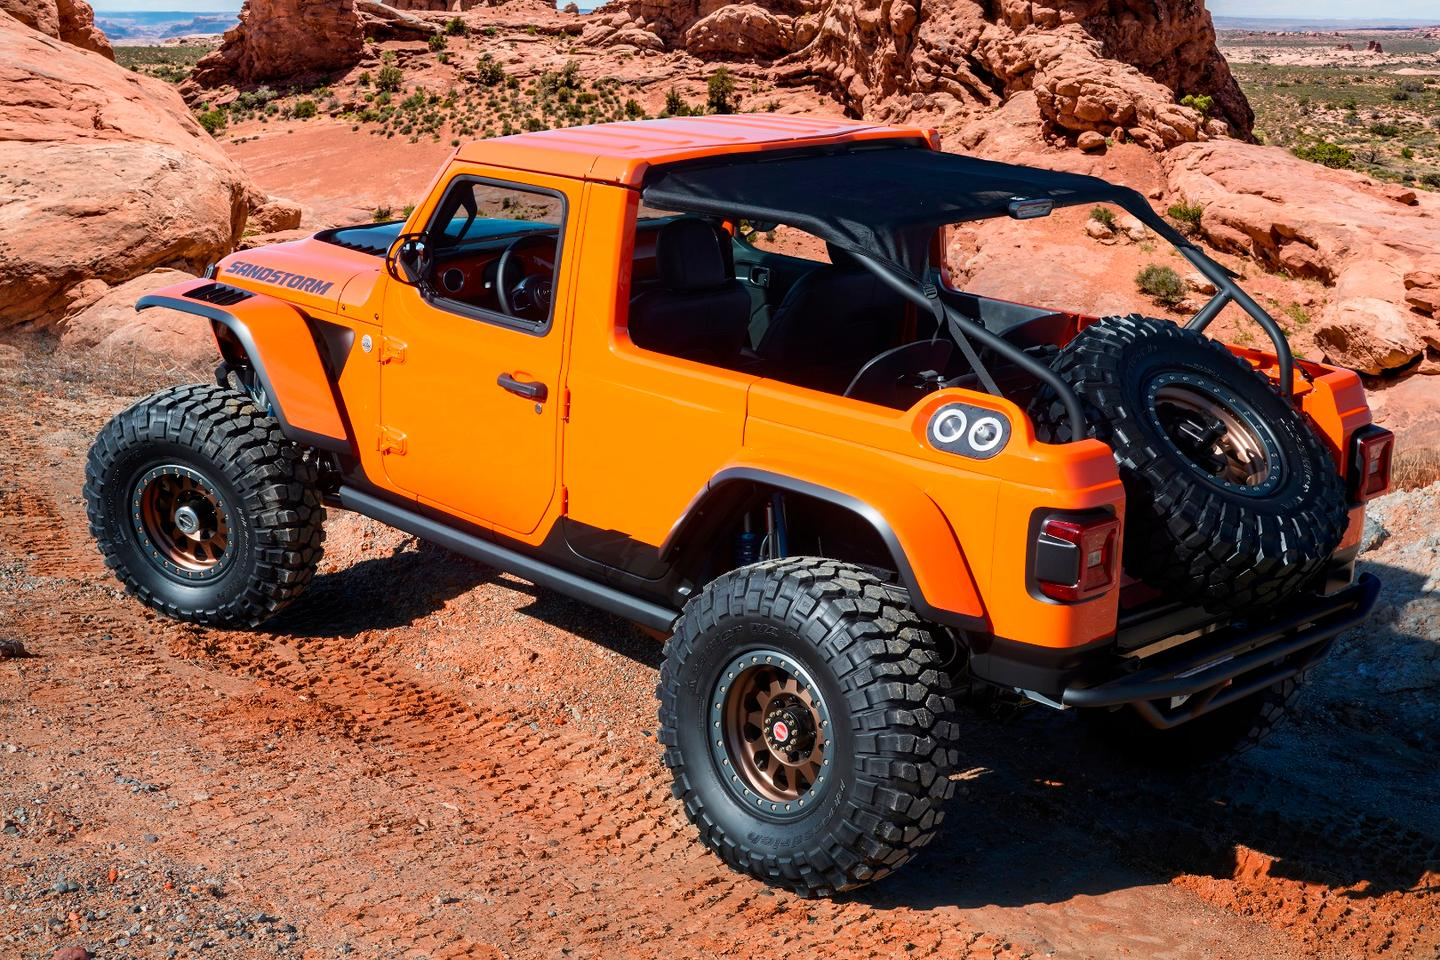 Jeep Sandstorm: inspired by Baja racing